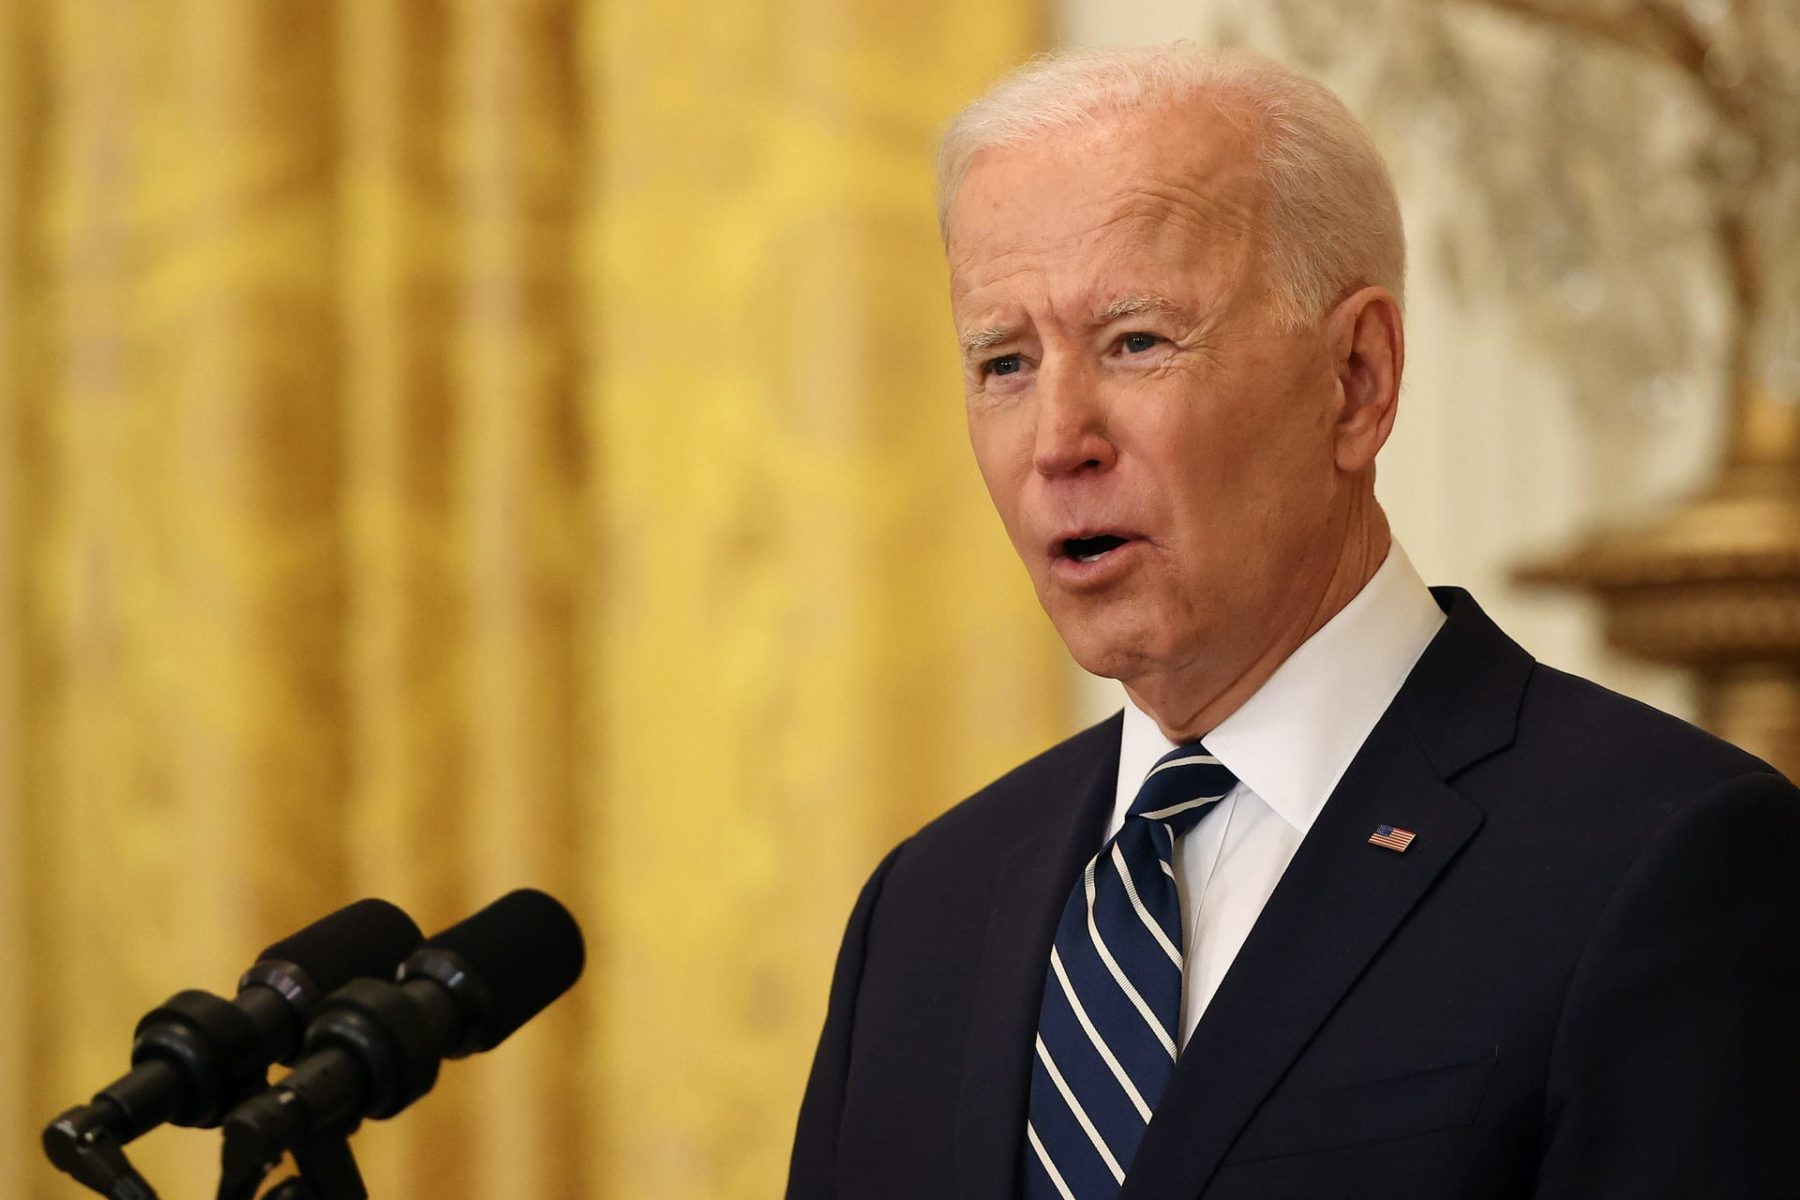 Joe Biden speaking at a dias into a microphone